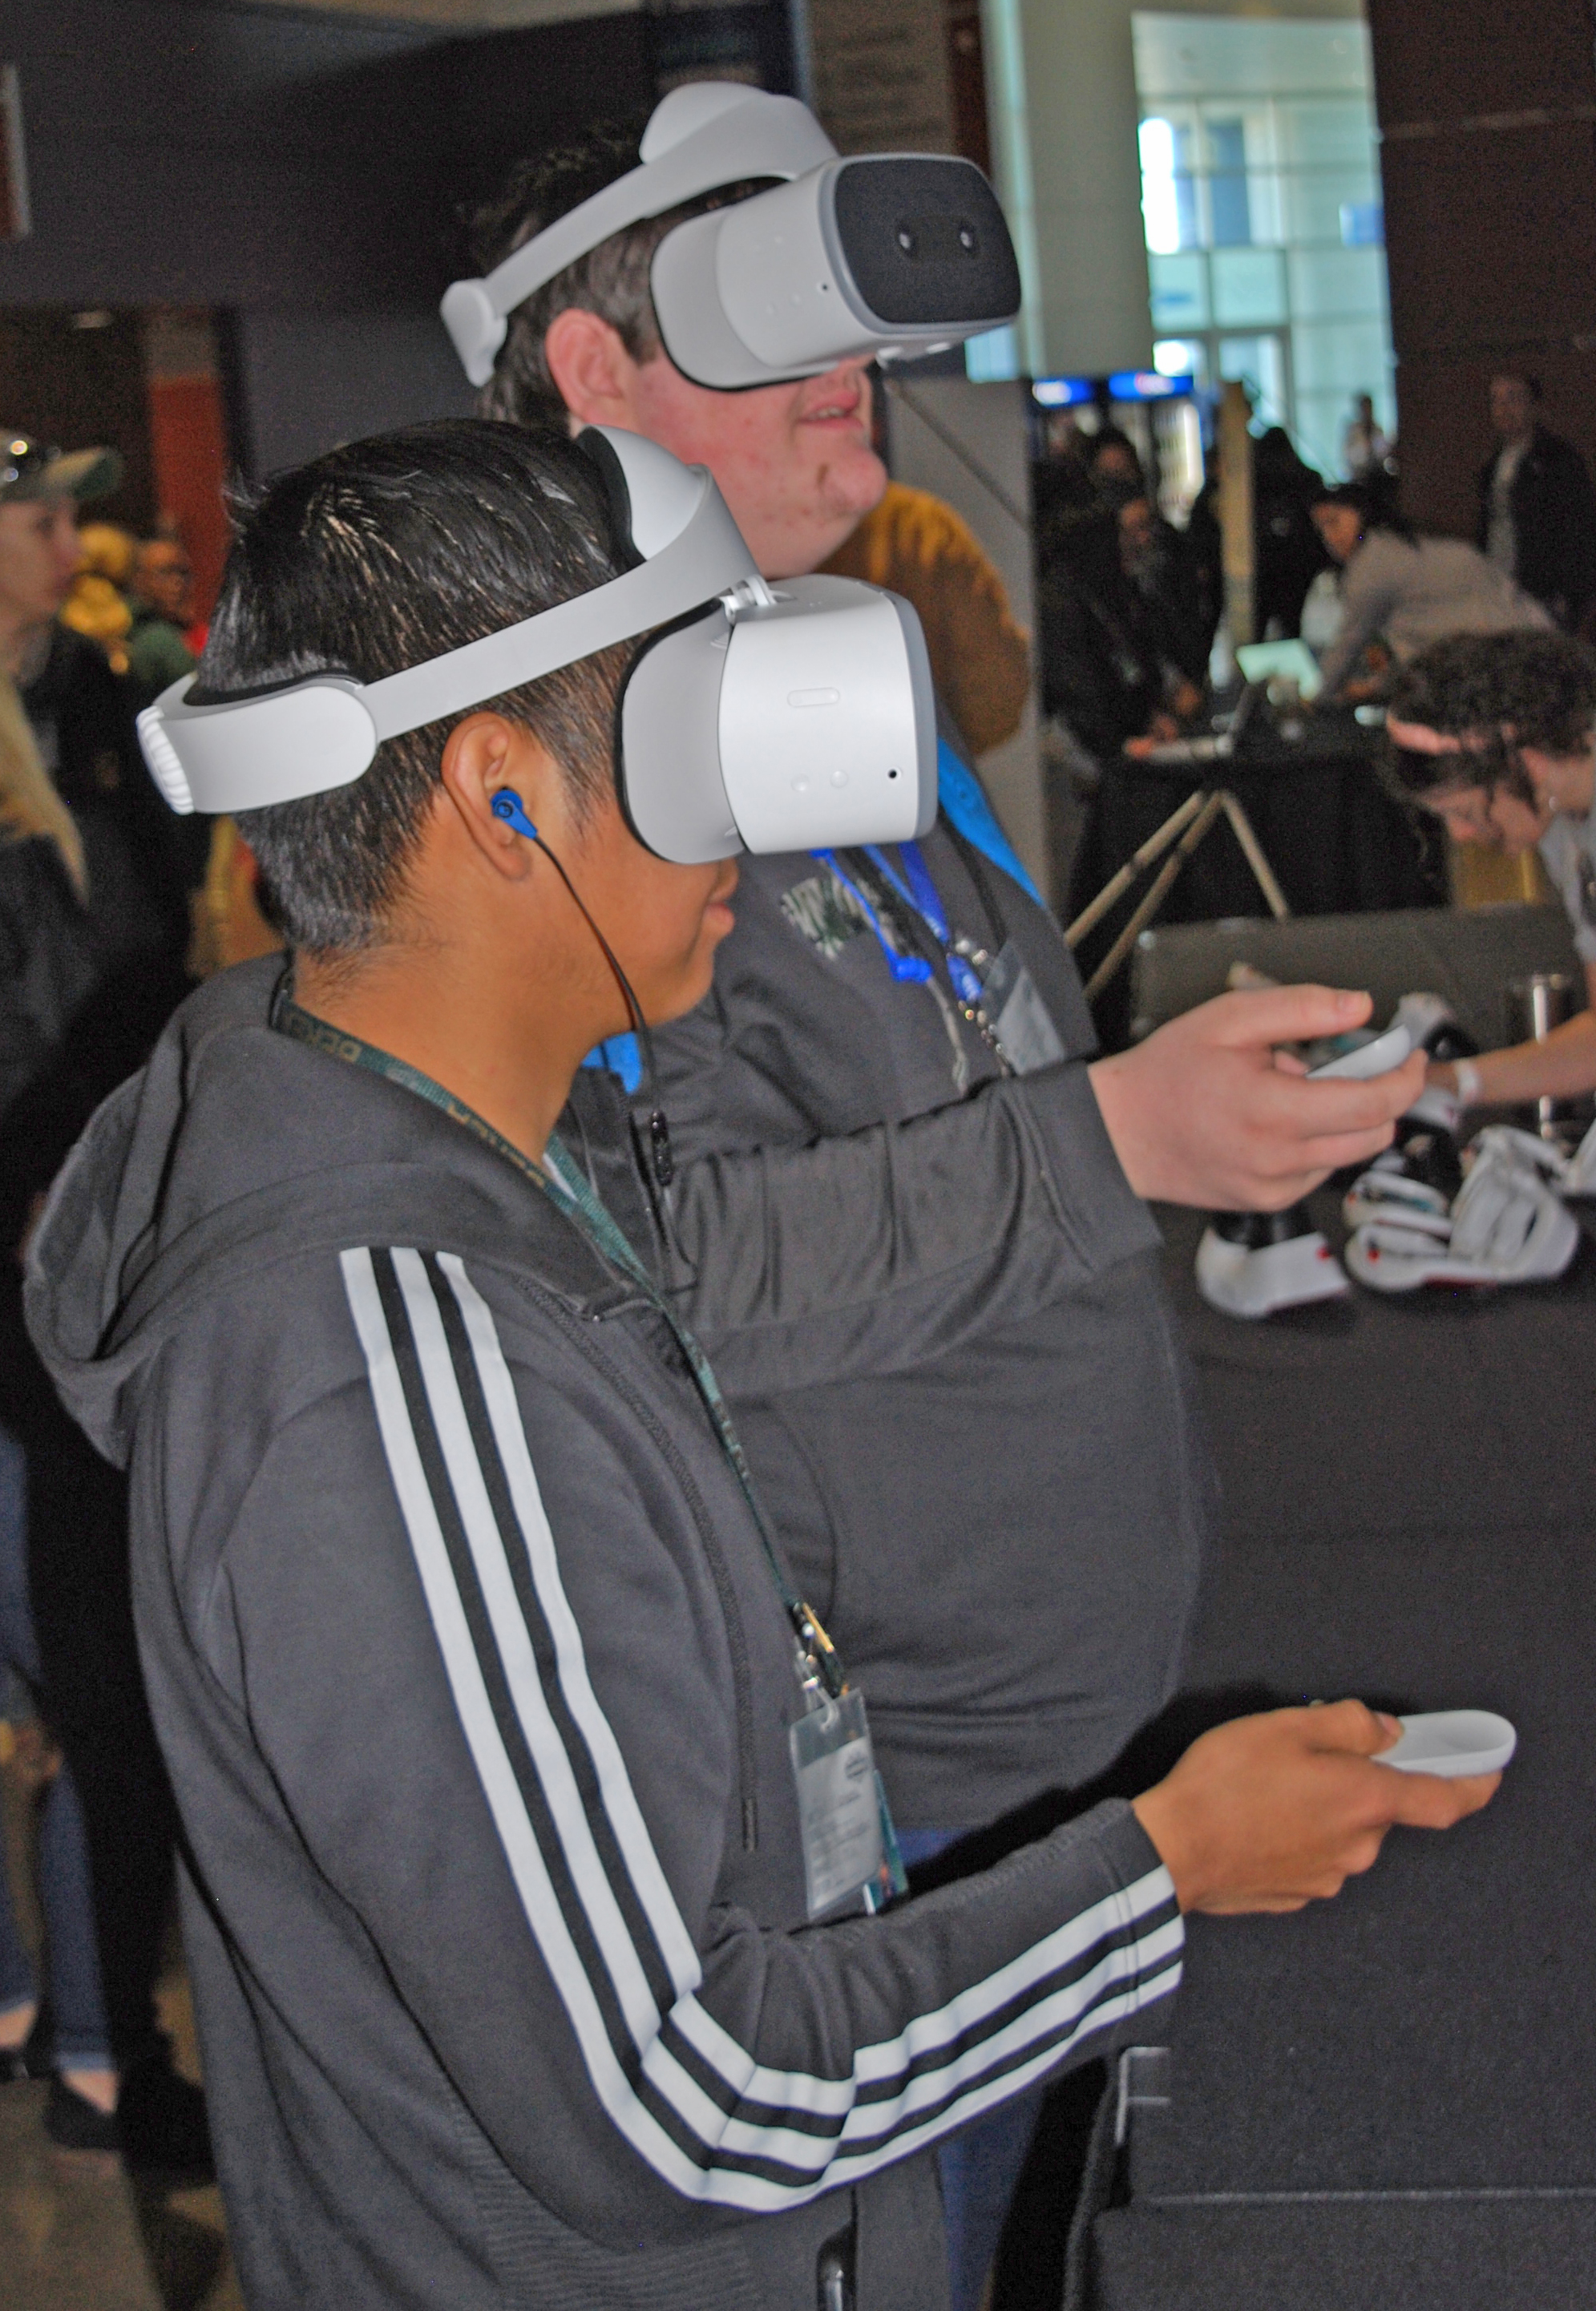 """Students have fun exploring virtual reality learning during """"STEAM Day"""" at Bon Secours Wellness Arena."""